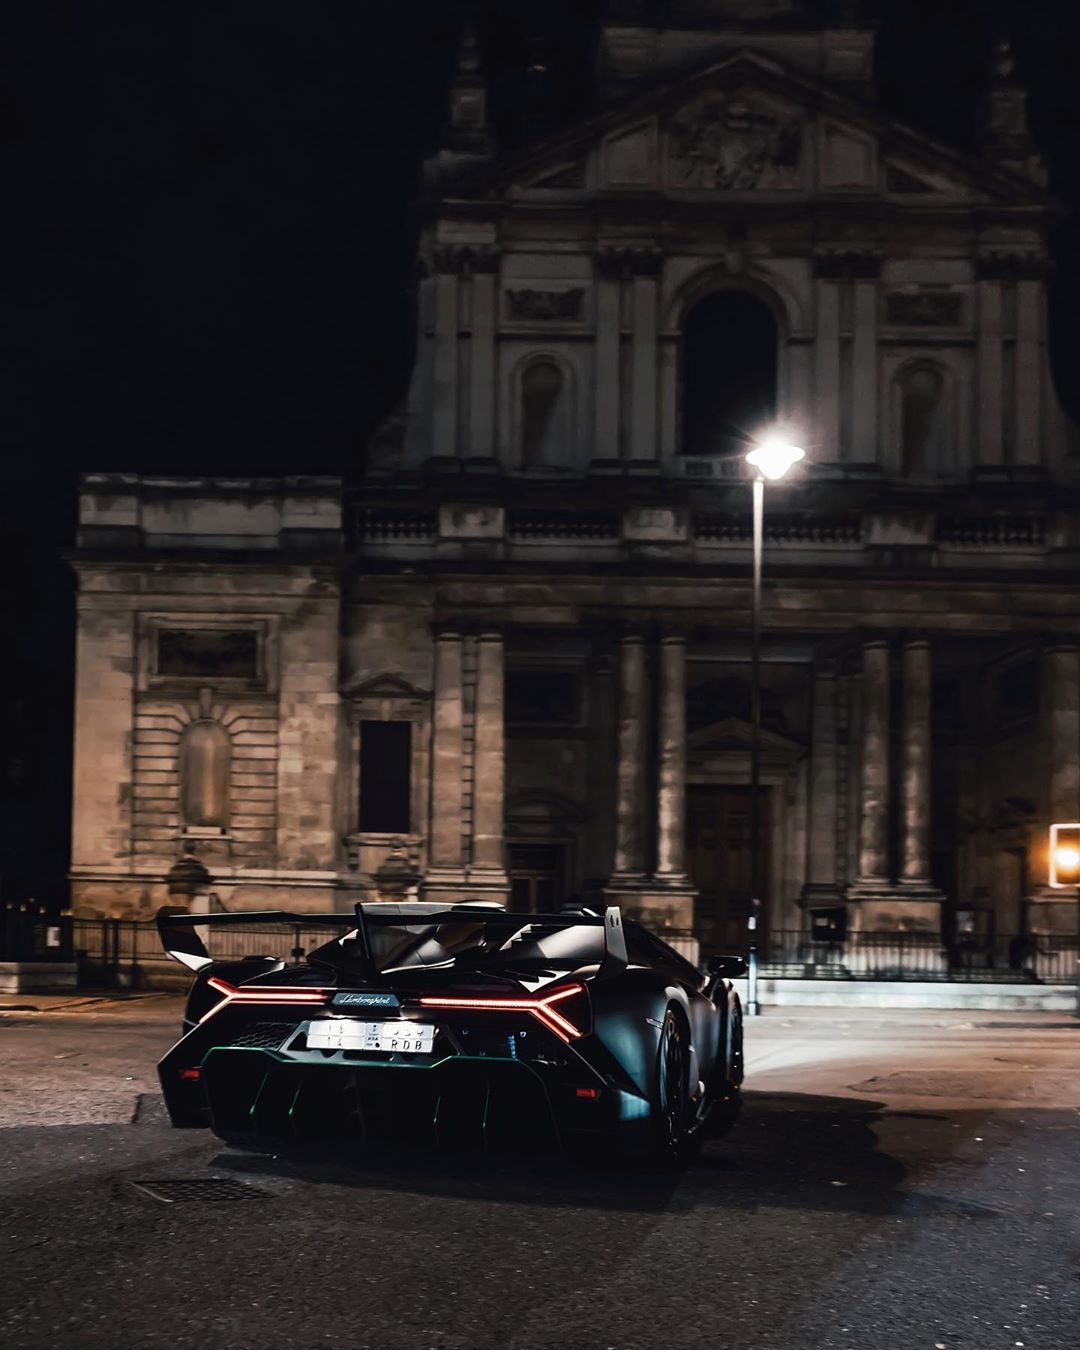 "TFJJ on Instagram: ""Veneno Roadster by night 🚀 @b14 